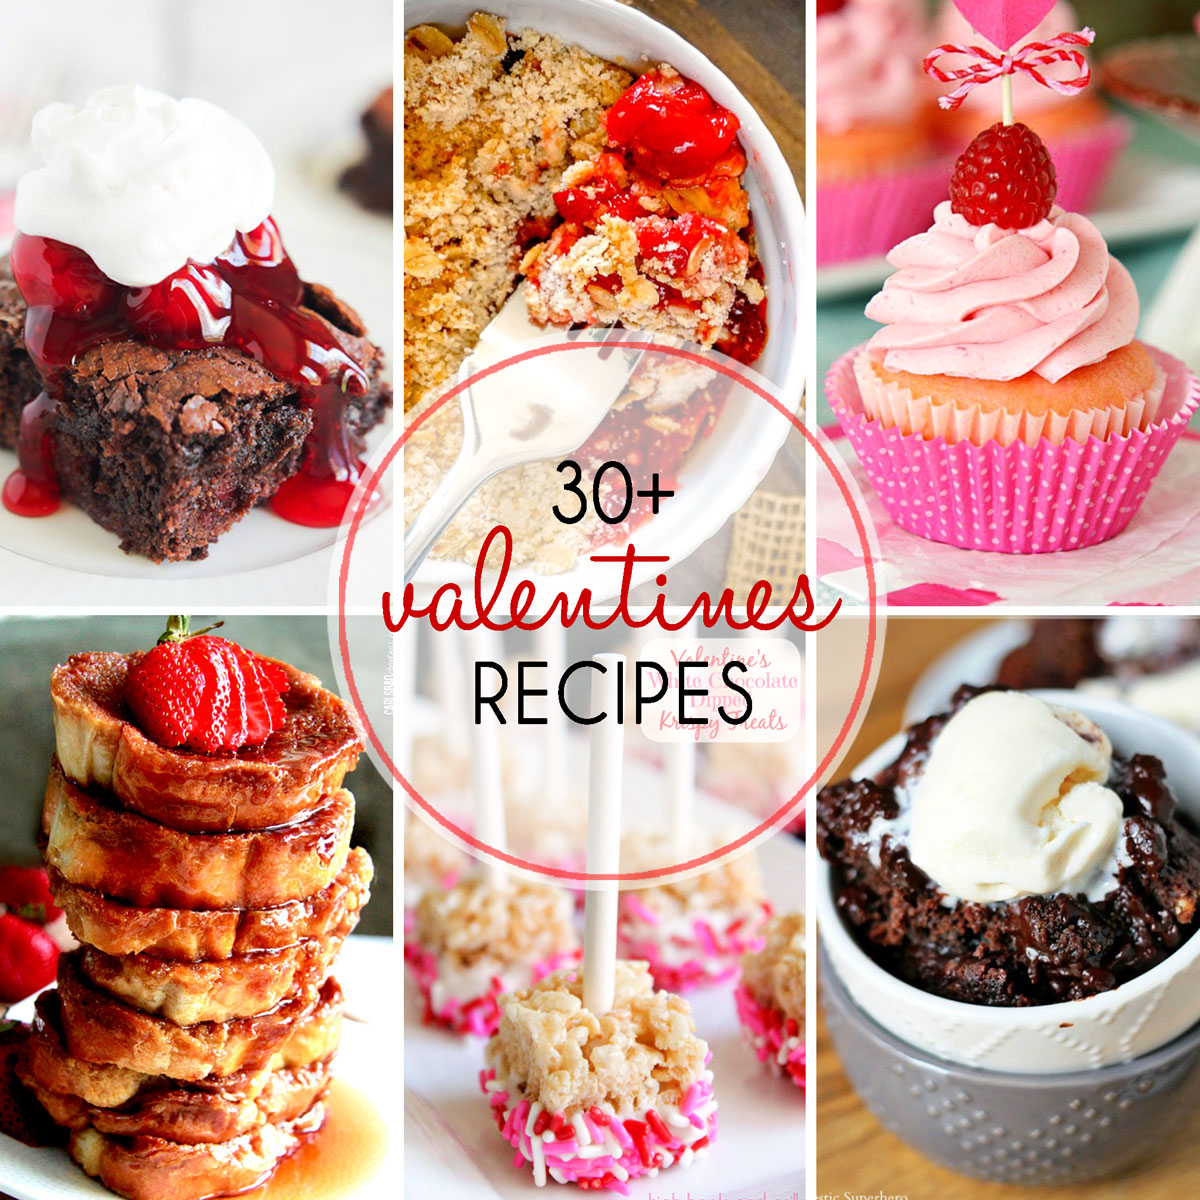 Sweet desserts perfect for date night, Valentine's Day, or just a romantic night curled up on the couch with your true love, Netflix. Enjoy! Find more sweet recipes on cravingsofalunatic.com! You'll find my conversation heart cakelets on my blog too! @CravingsLunatic)